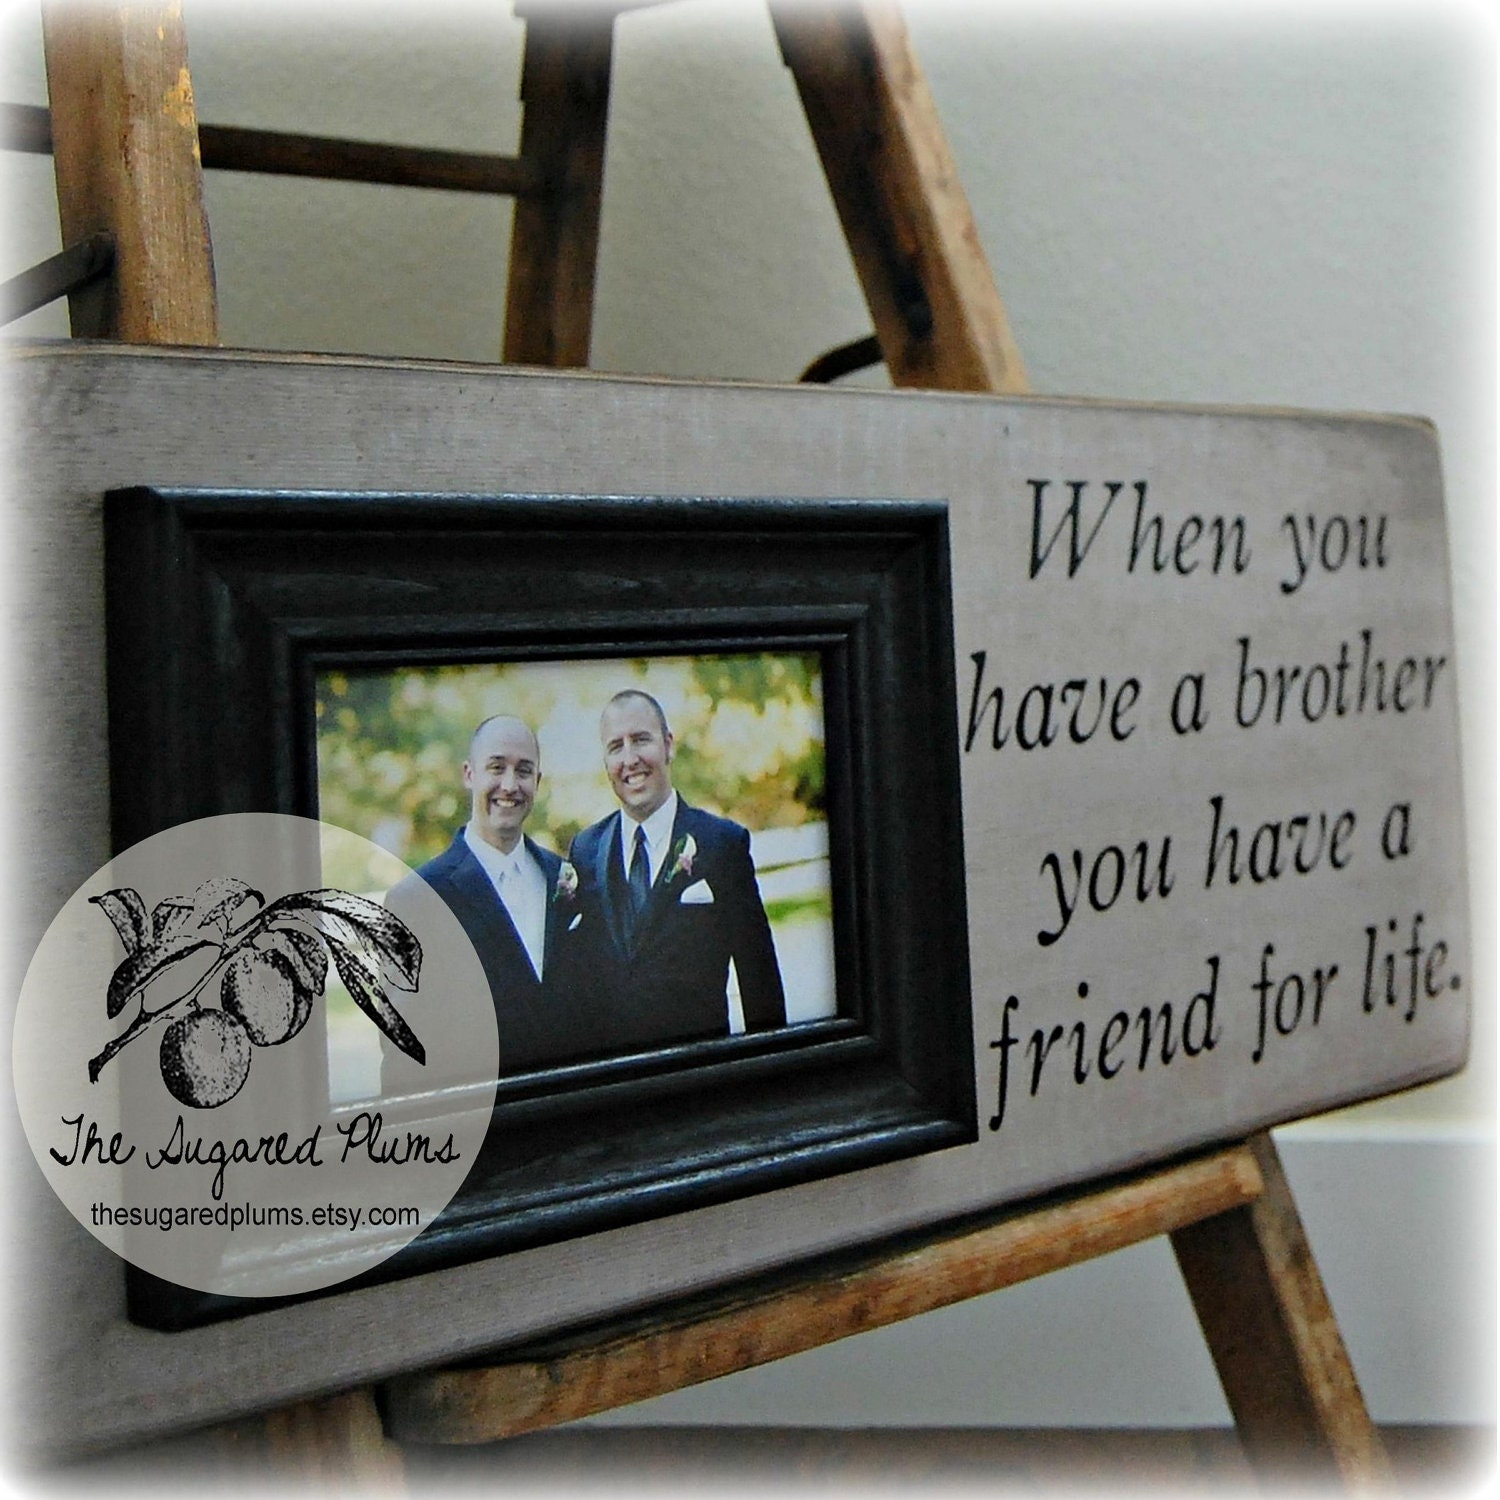 Wedding Gift For Brother Cash : ... Frame 8x20 When You Have a Brother Best Friend Wedding Gift Groomsman